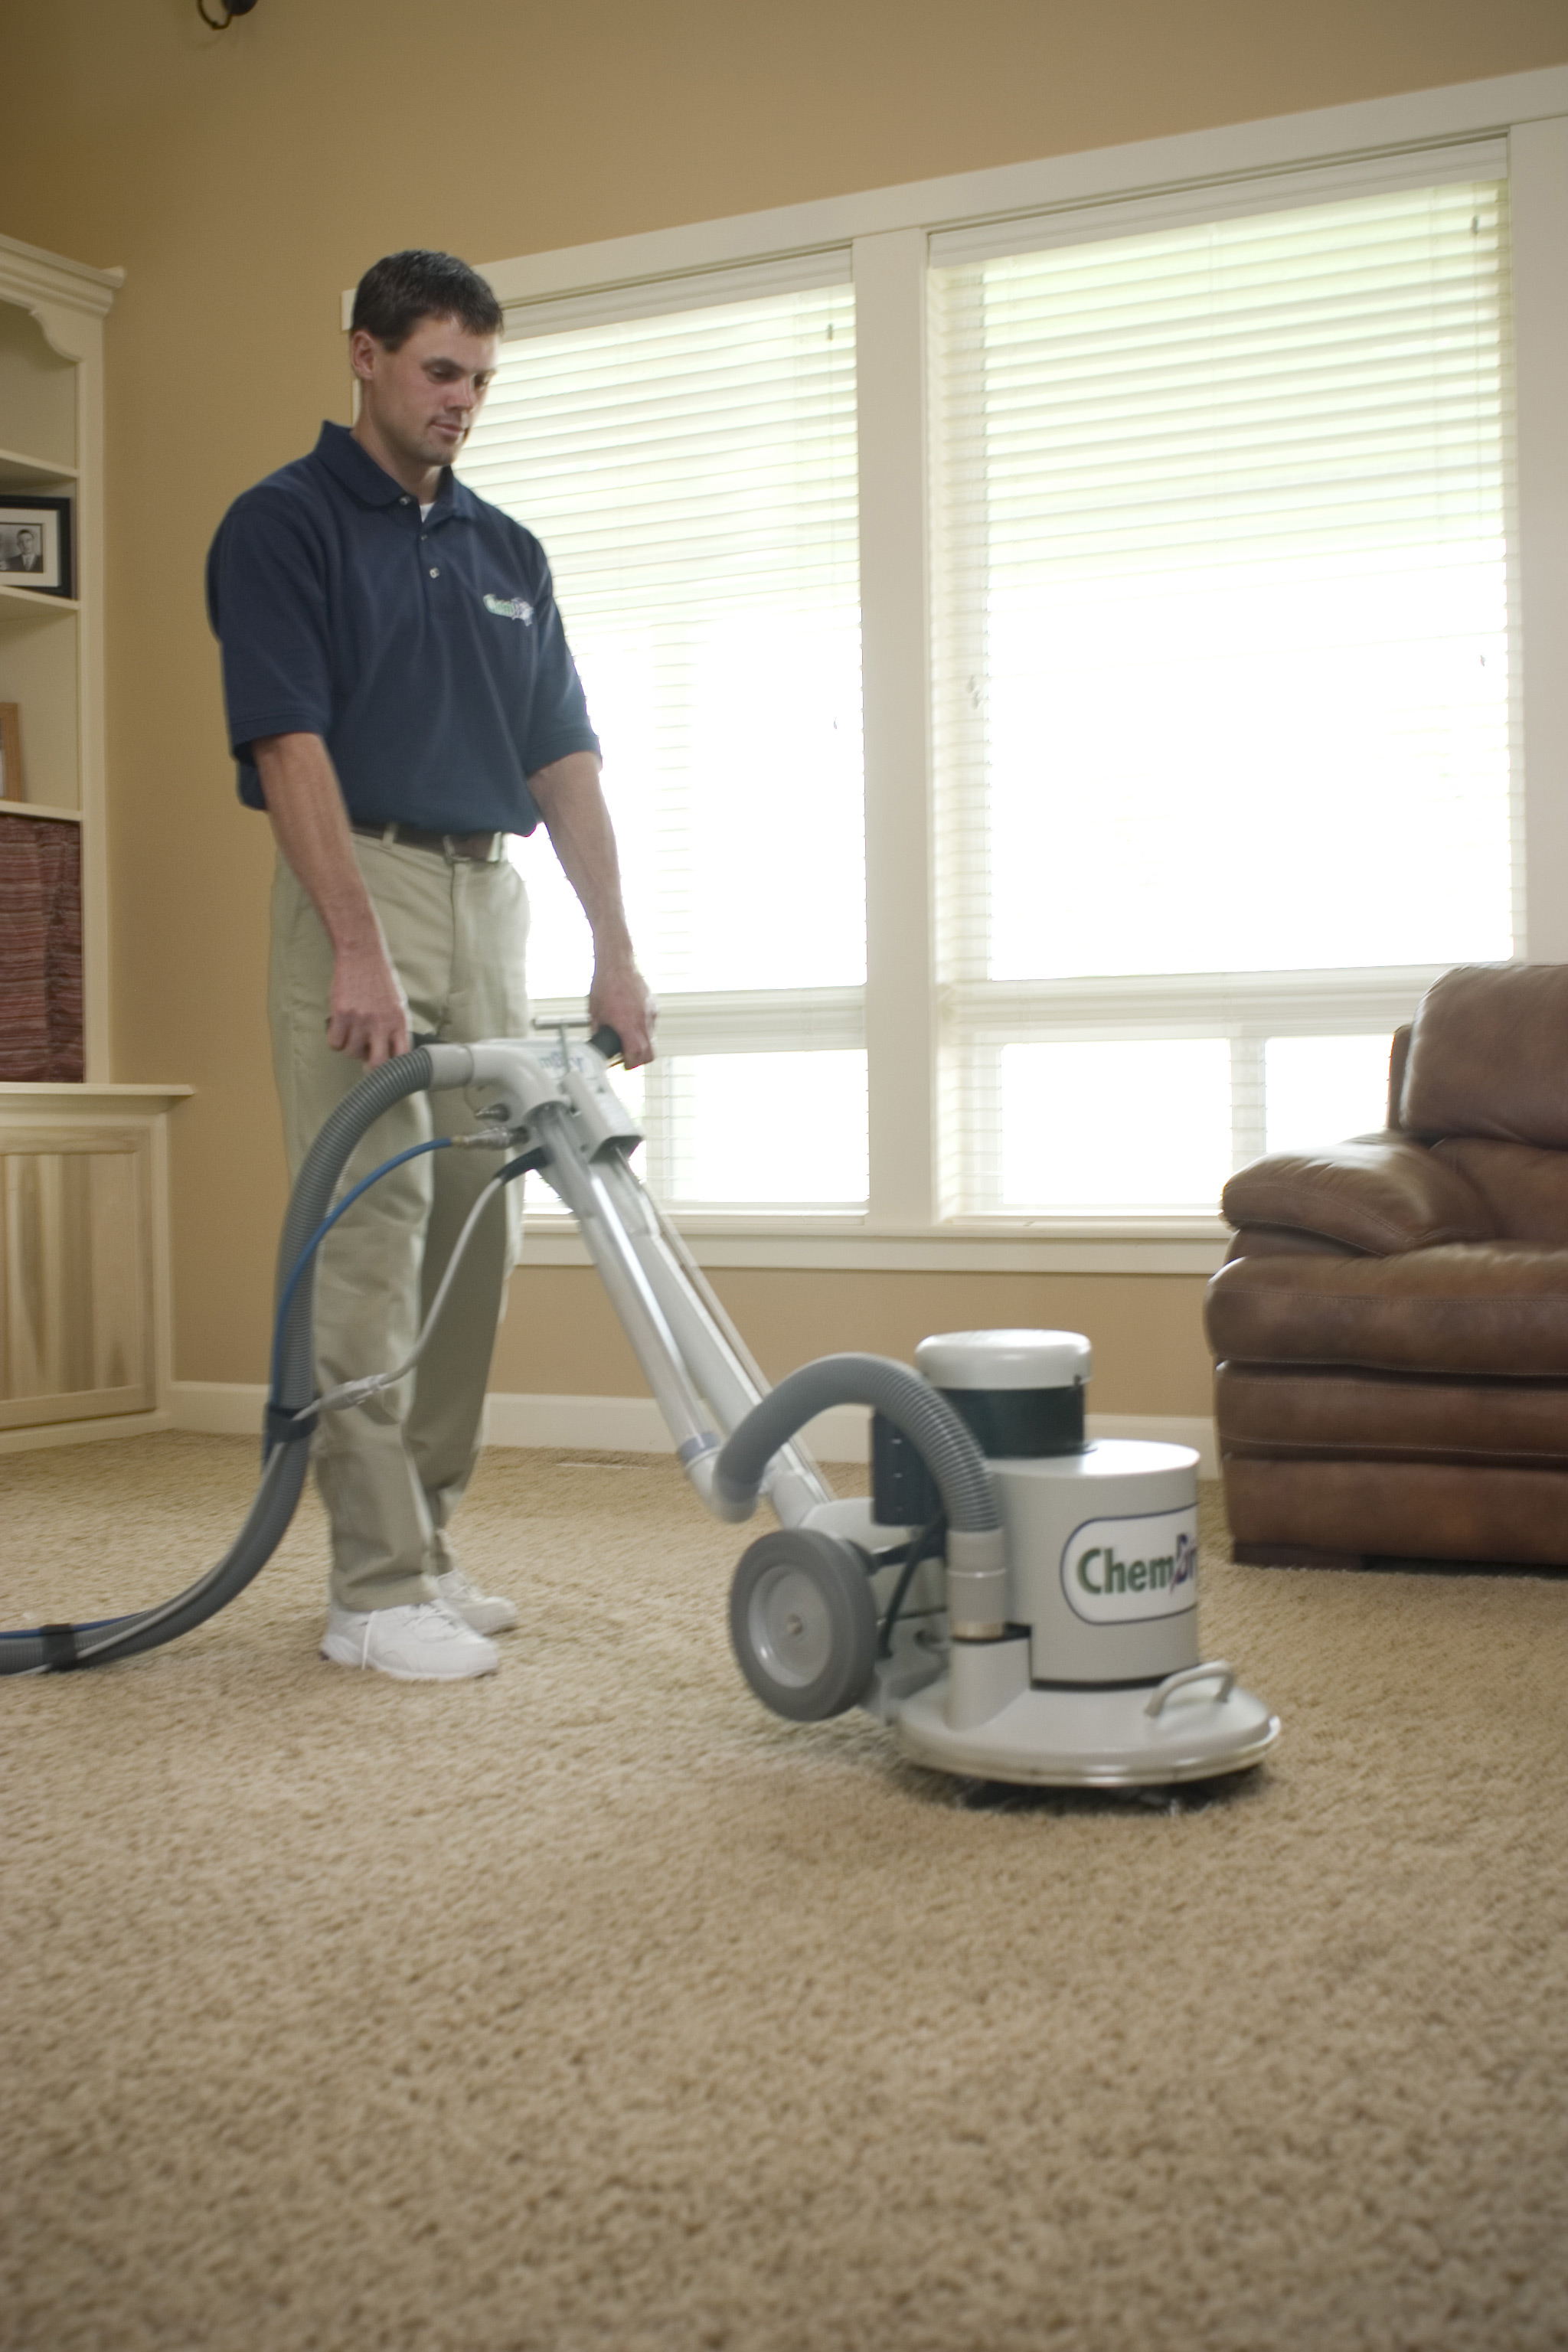 Chem-Dry is your healthy home provider for carpet and upholstery cleaning Westlake Village CA